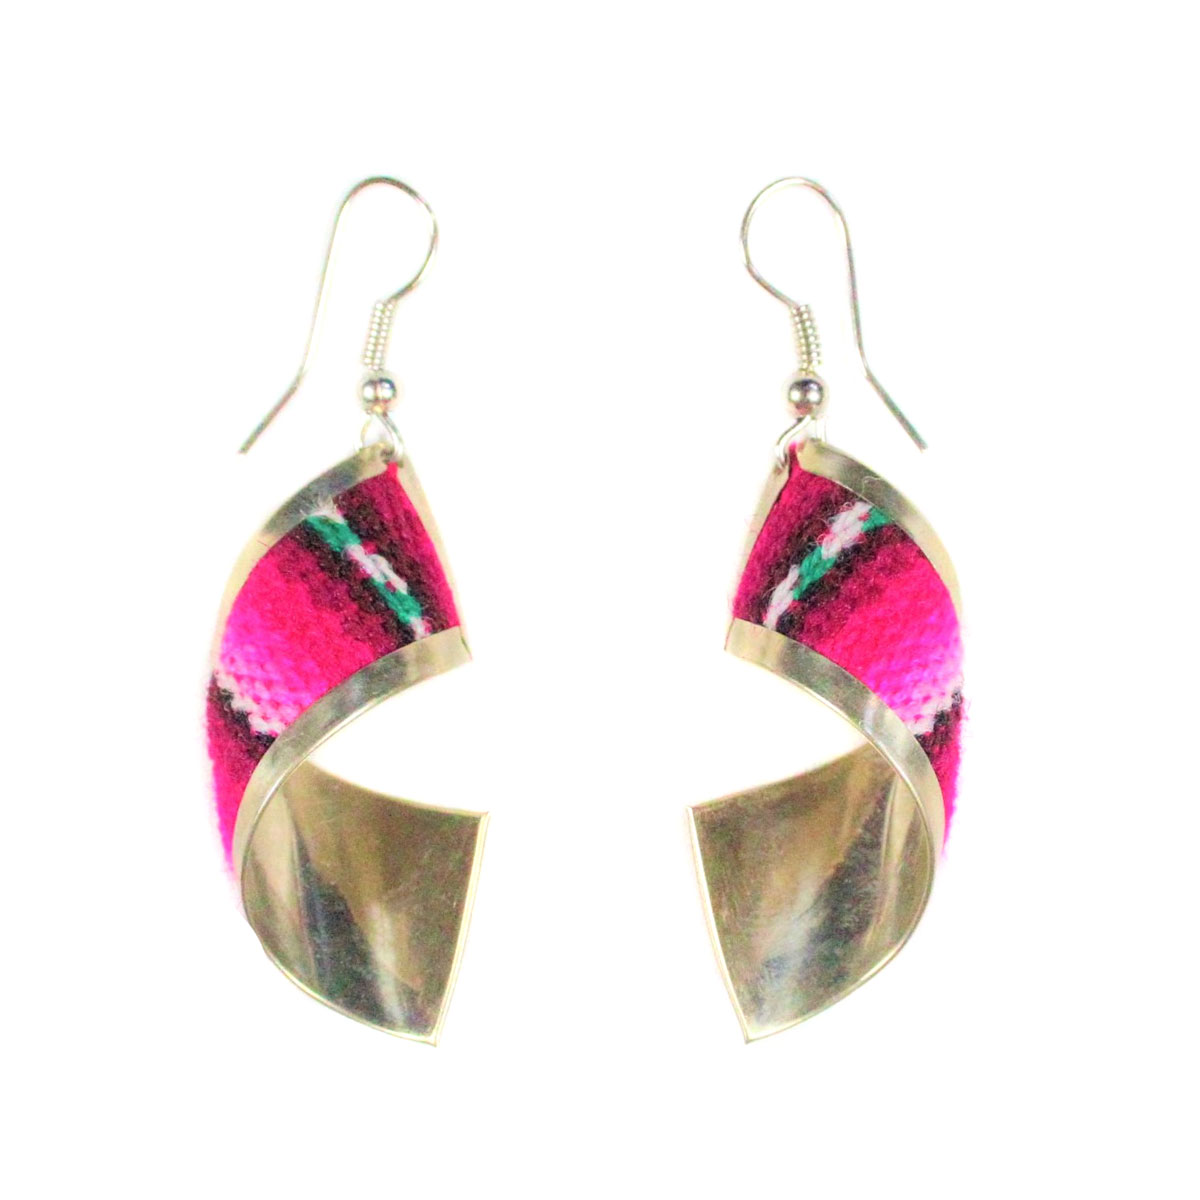 Inka-Products-Boucles d'Oreilles Tissu Traditionnel Péruvien-Rectangle Spiral Nuances de Fuchsia